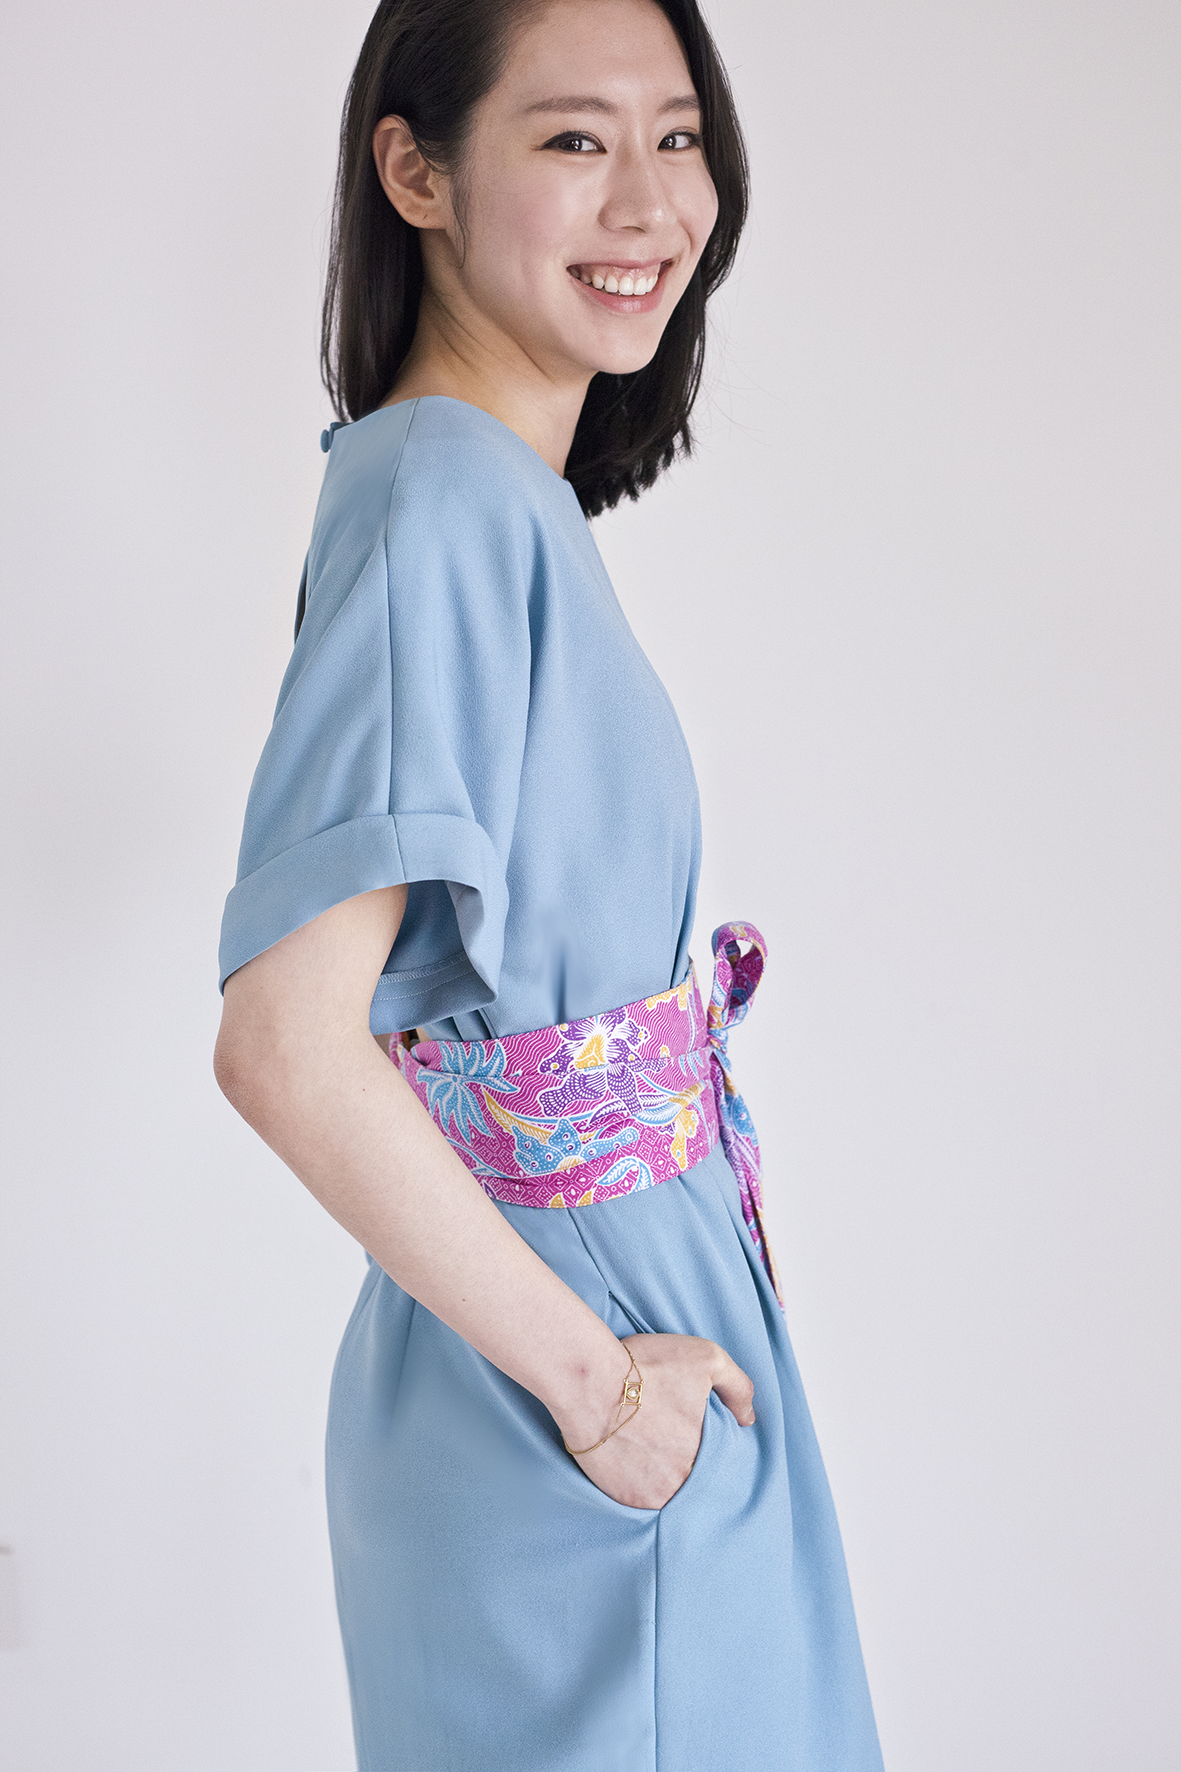 Demeteer bareback Kimono Dress in Vert d'Eau 30% OFF S$169 NOW S$118